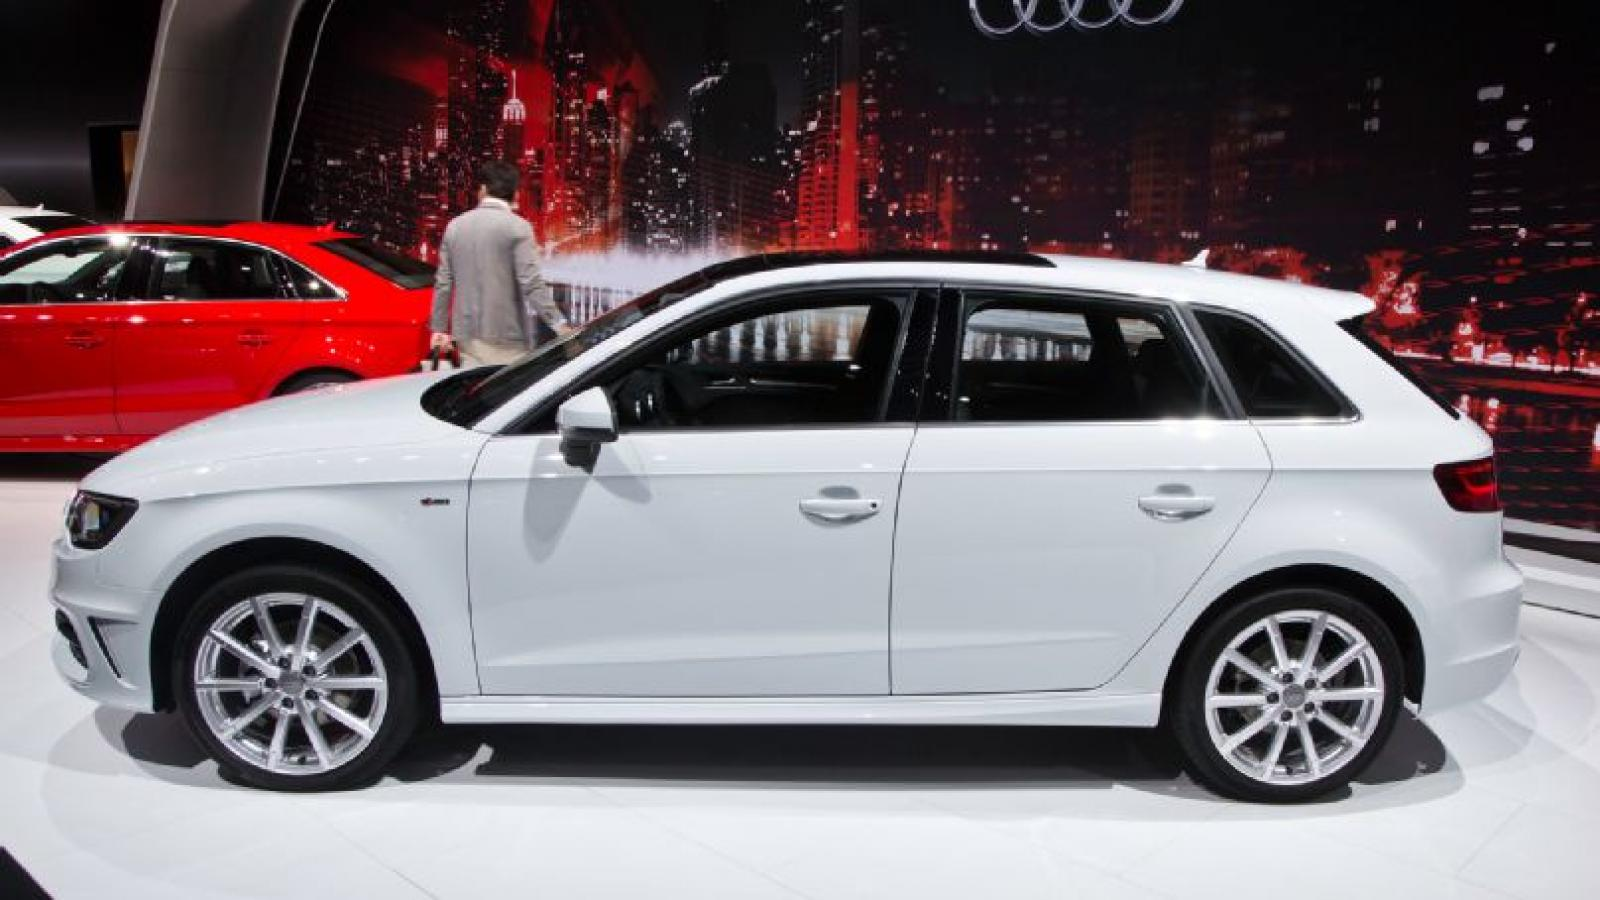 photo audi general tdi line features s sportback and auto powertrain